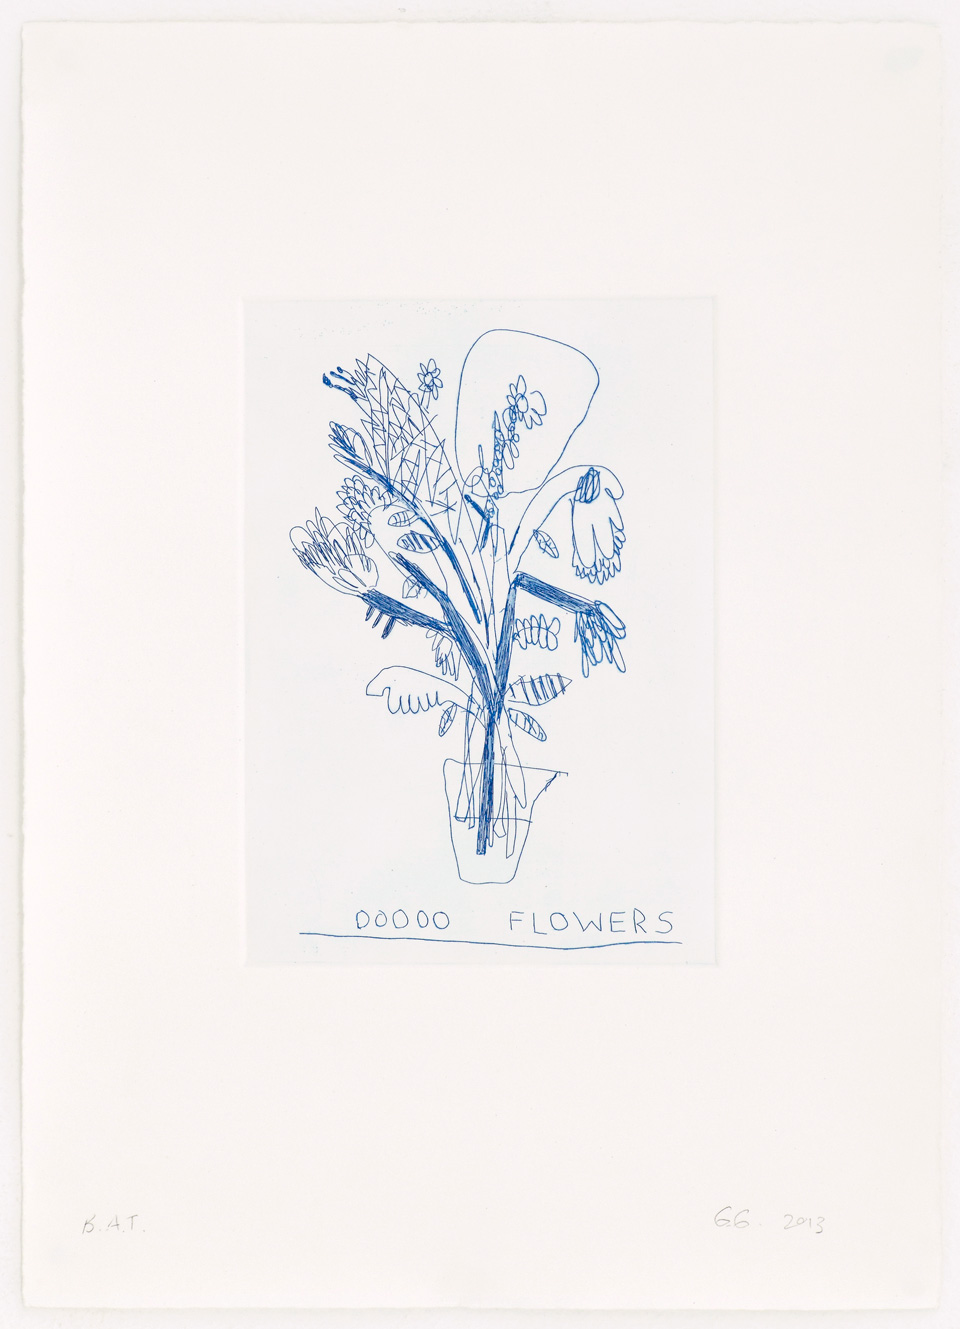 Georgina-Gratrix_0000-Flowers-M16sfweb